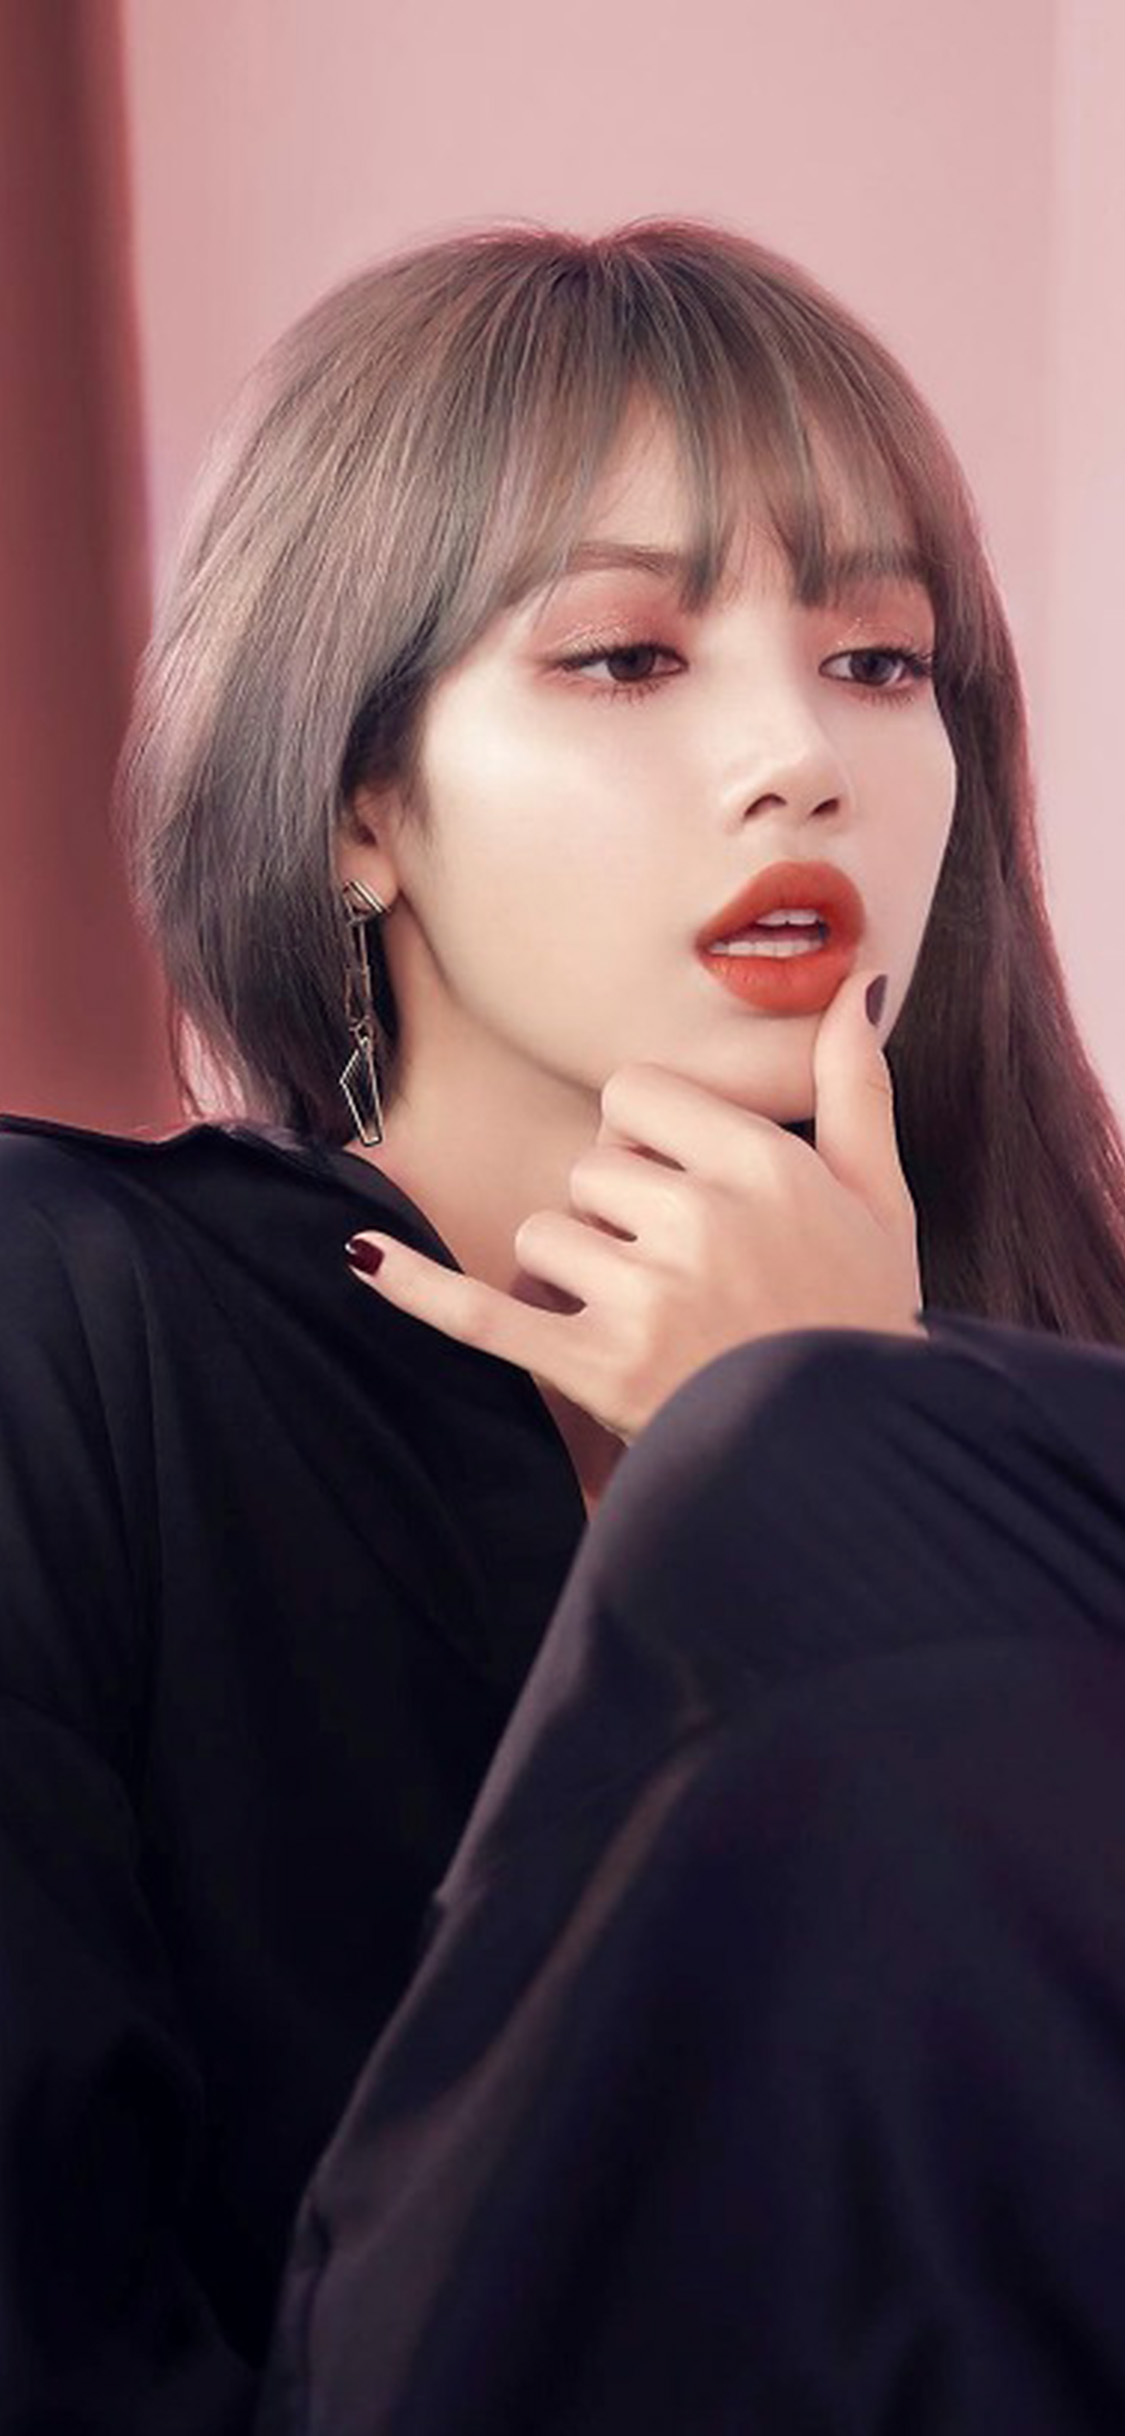 Iphone11papers Com Iphone11 Wallpaper Ht50 Blackpink Girl Idol Lisa